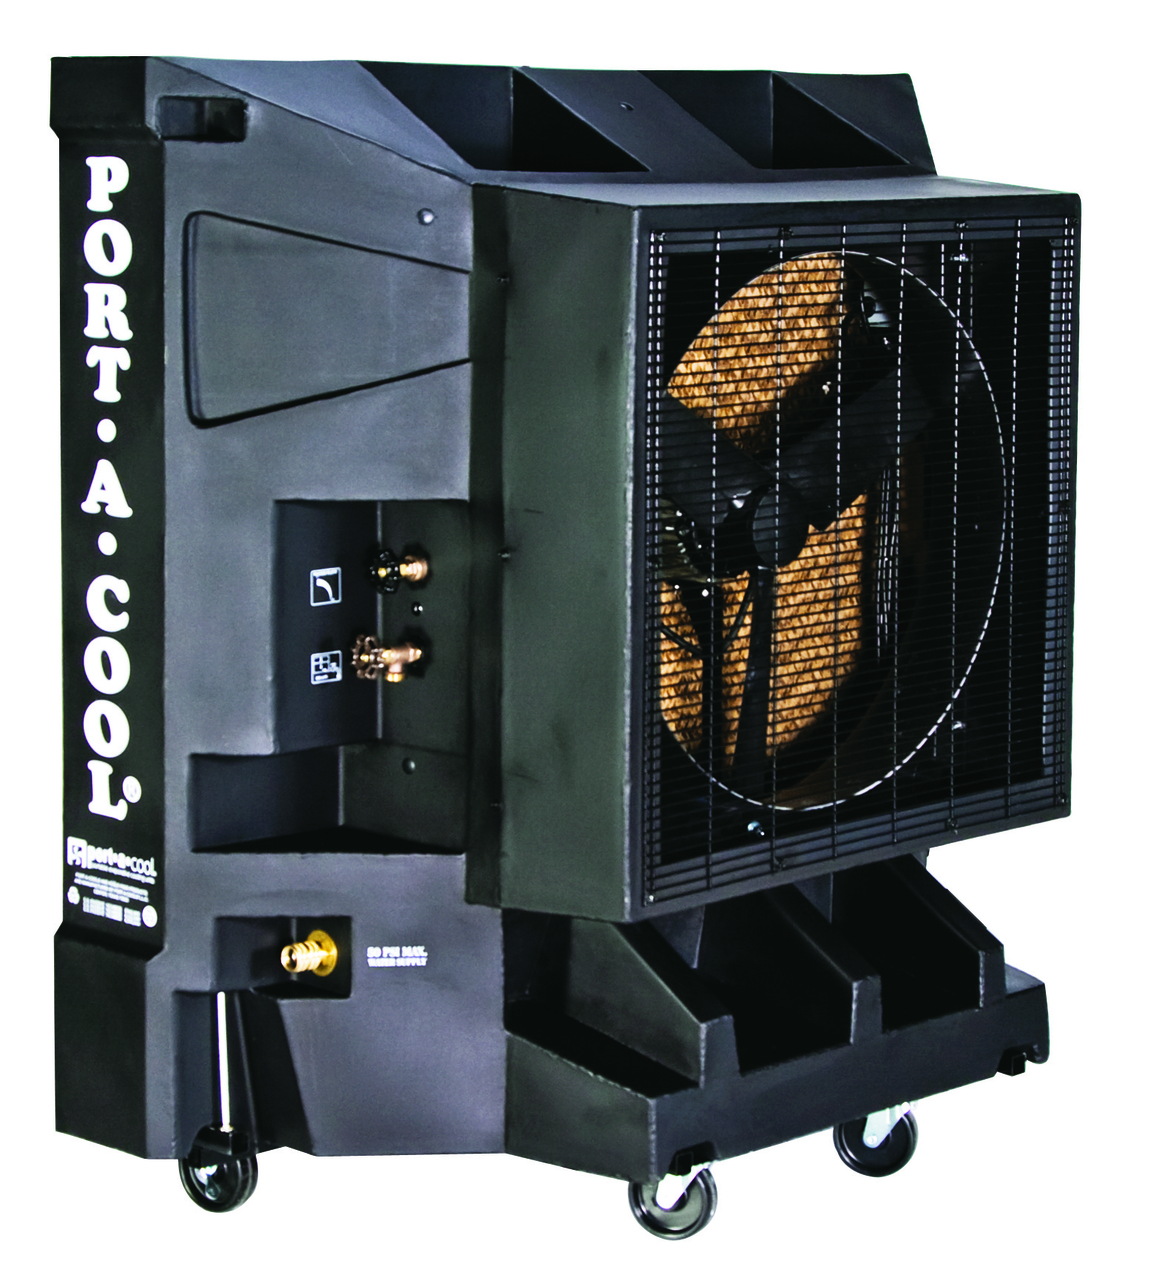 Port A Cool 24 Quot Variable Speed Portable Evaporative Cooler